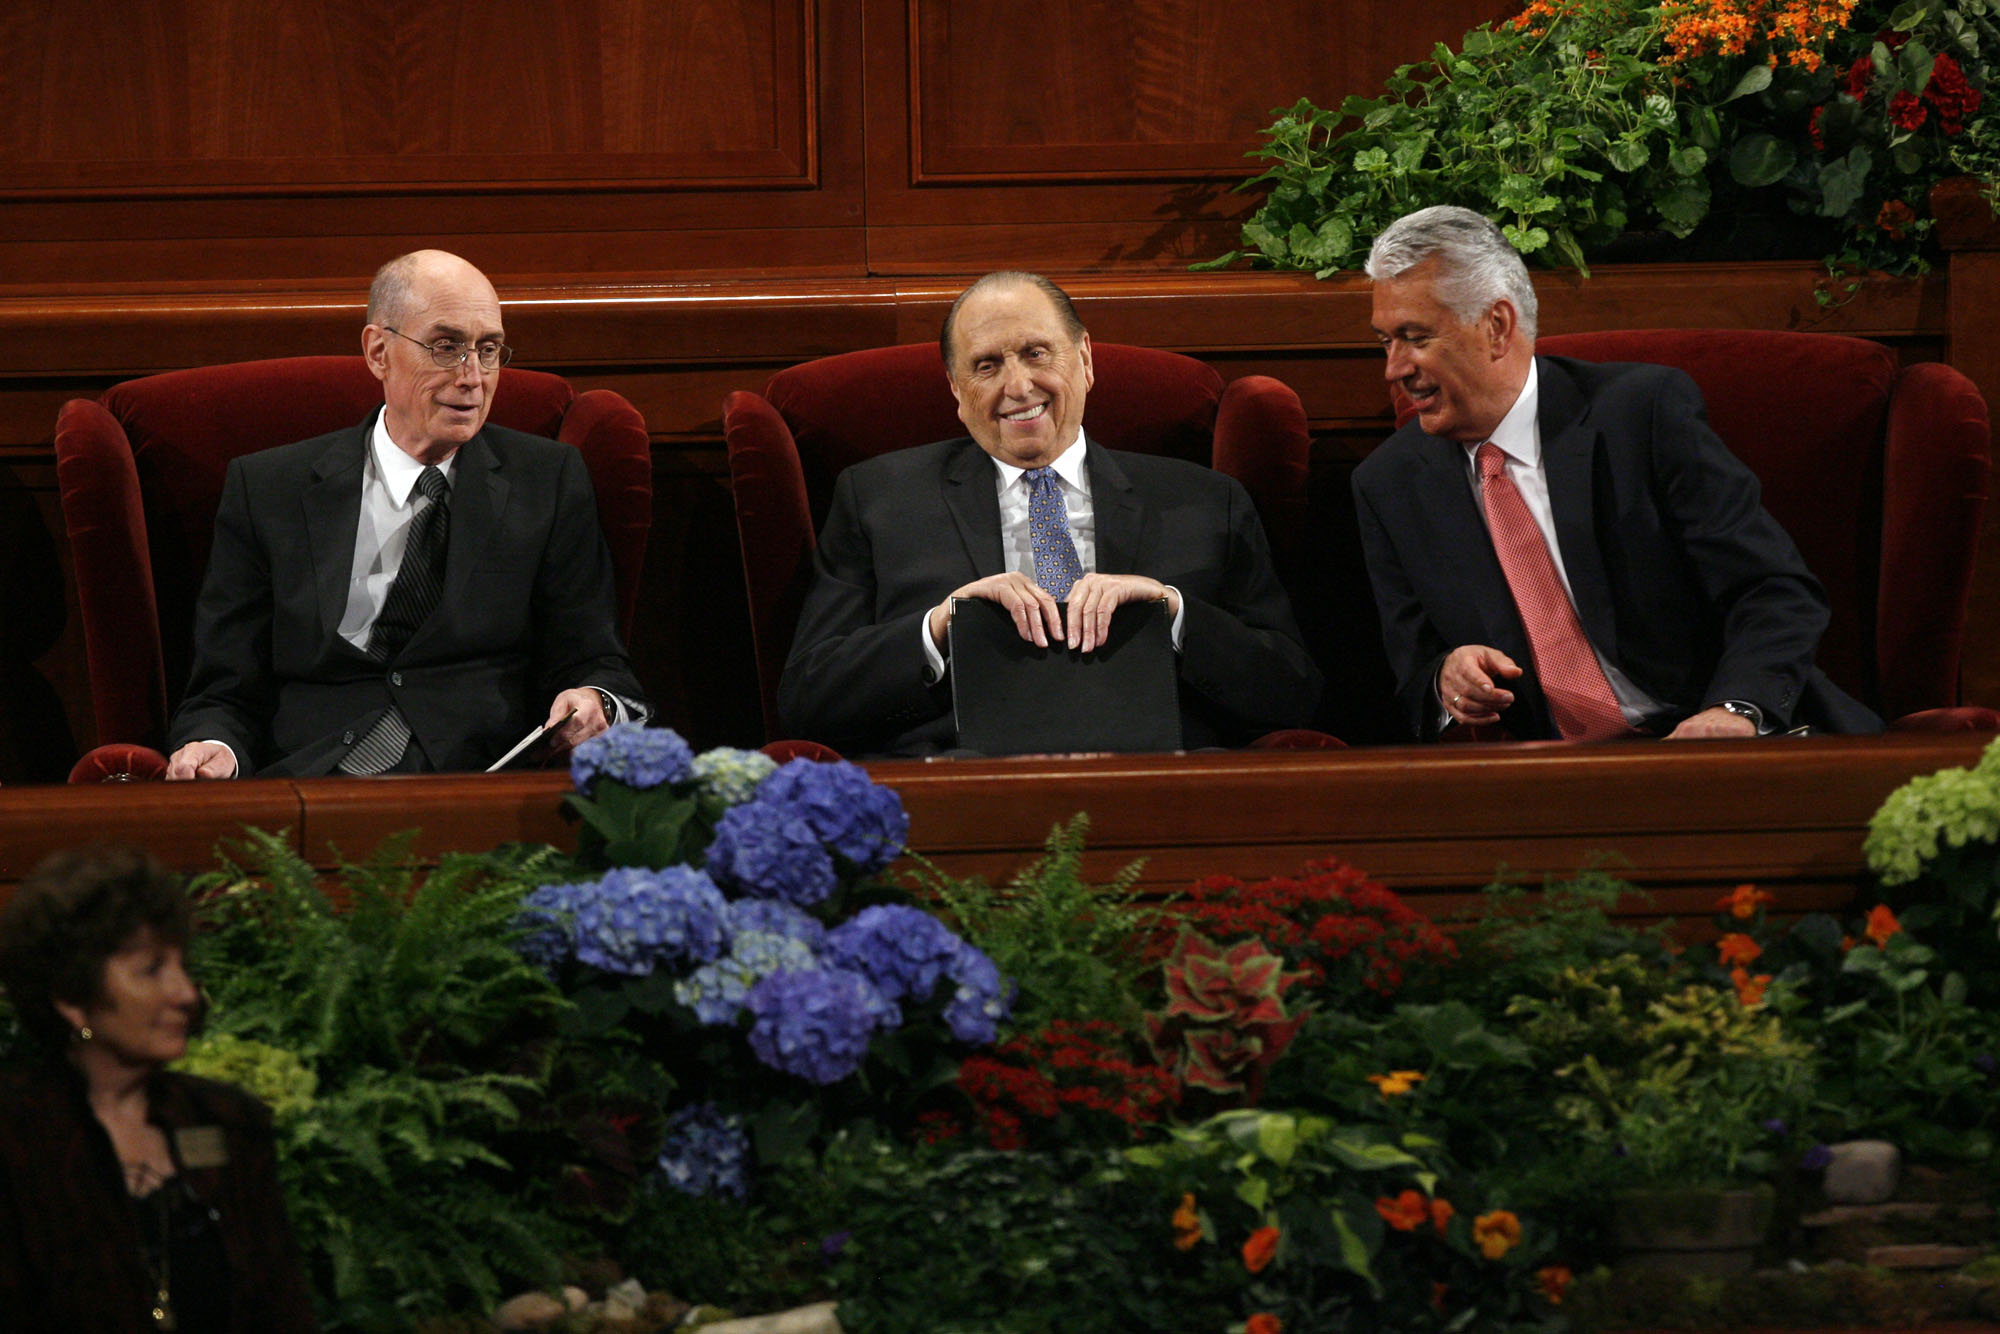 (Francisco Kjolseth  |  The Salt Lake Tribune) President Thomas S. Monson (center) with Henry B. Eyring (left) and Dieter F. Uchtdorf (right), share a few words prior to the start of the second session of the LDS General Conference on October 2, 2010.